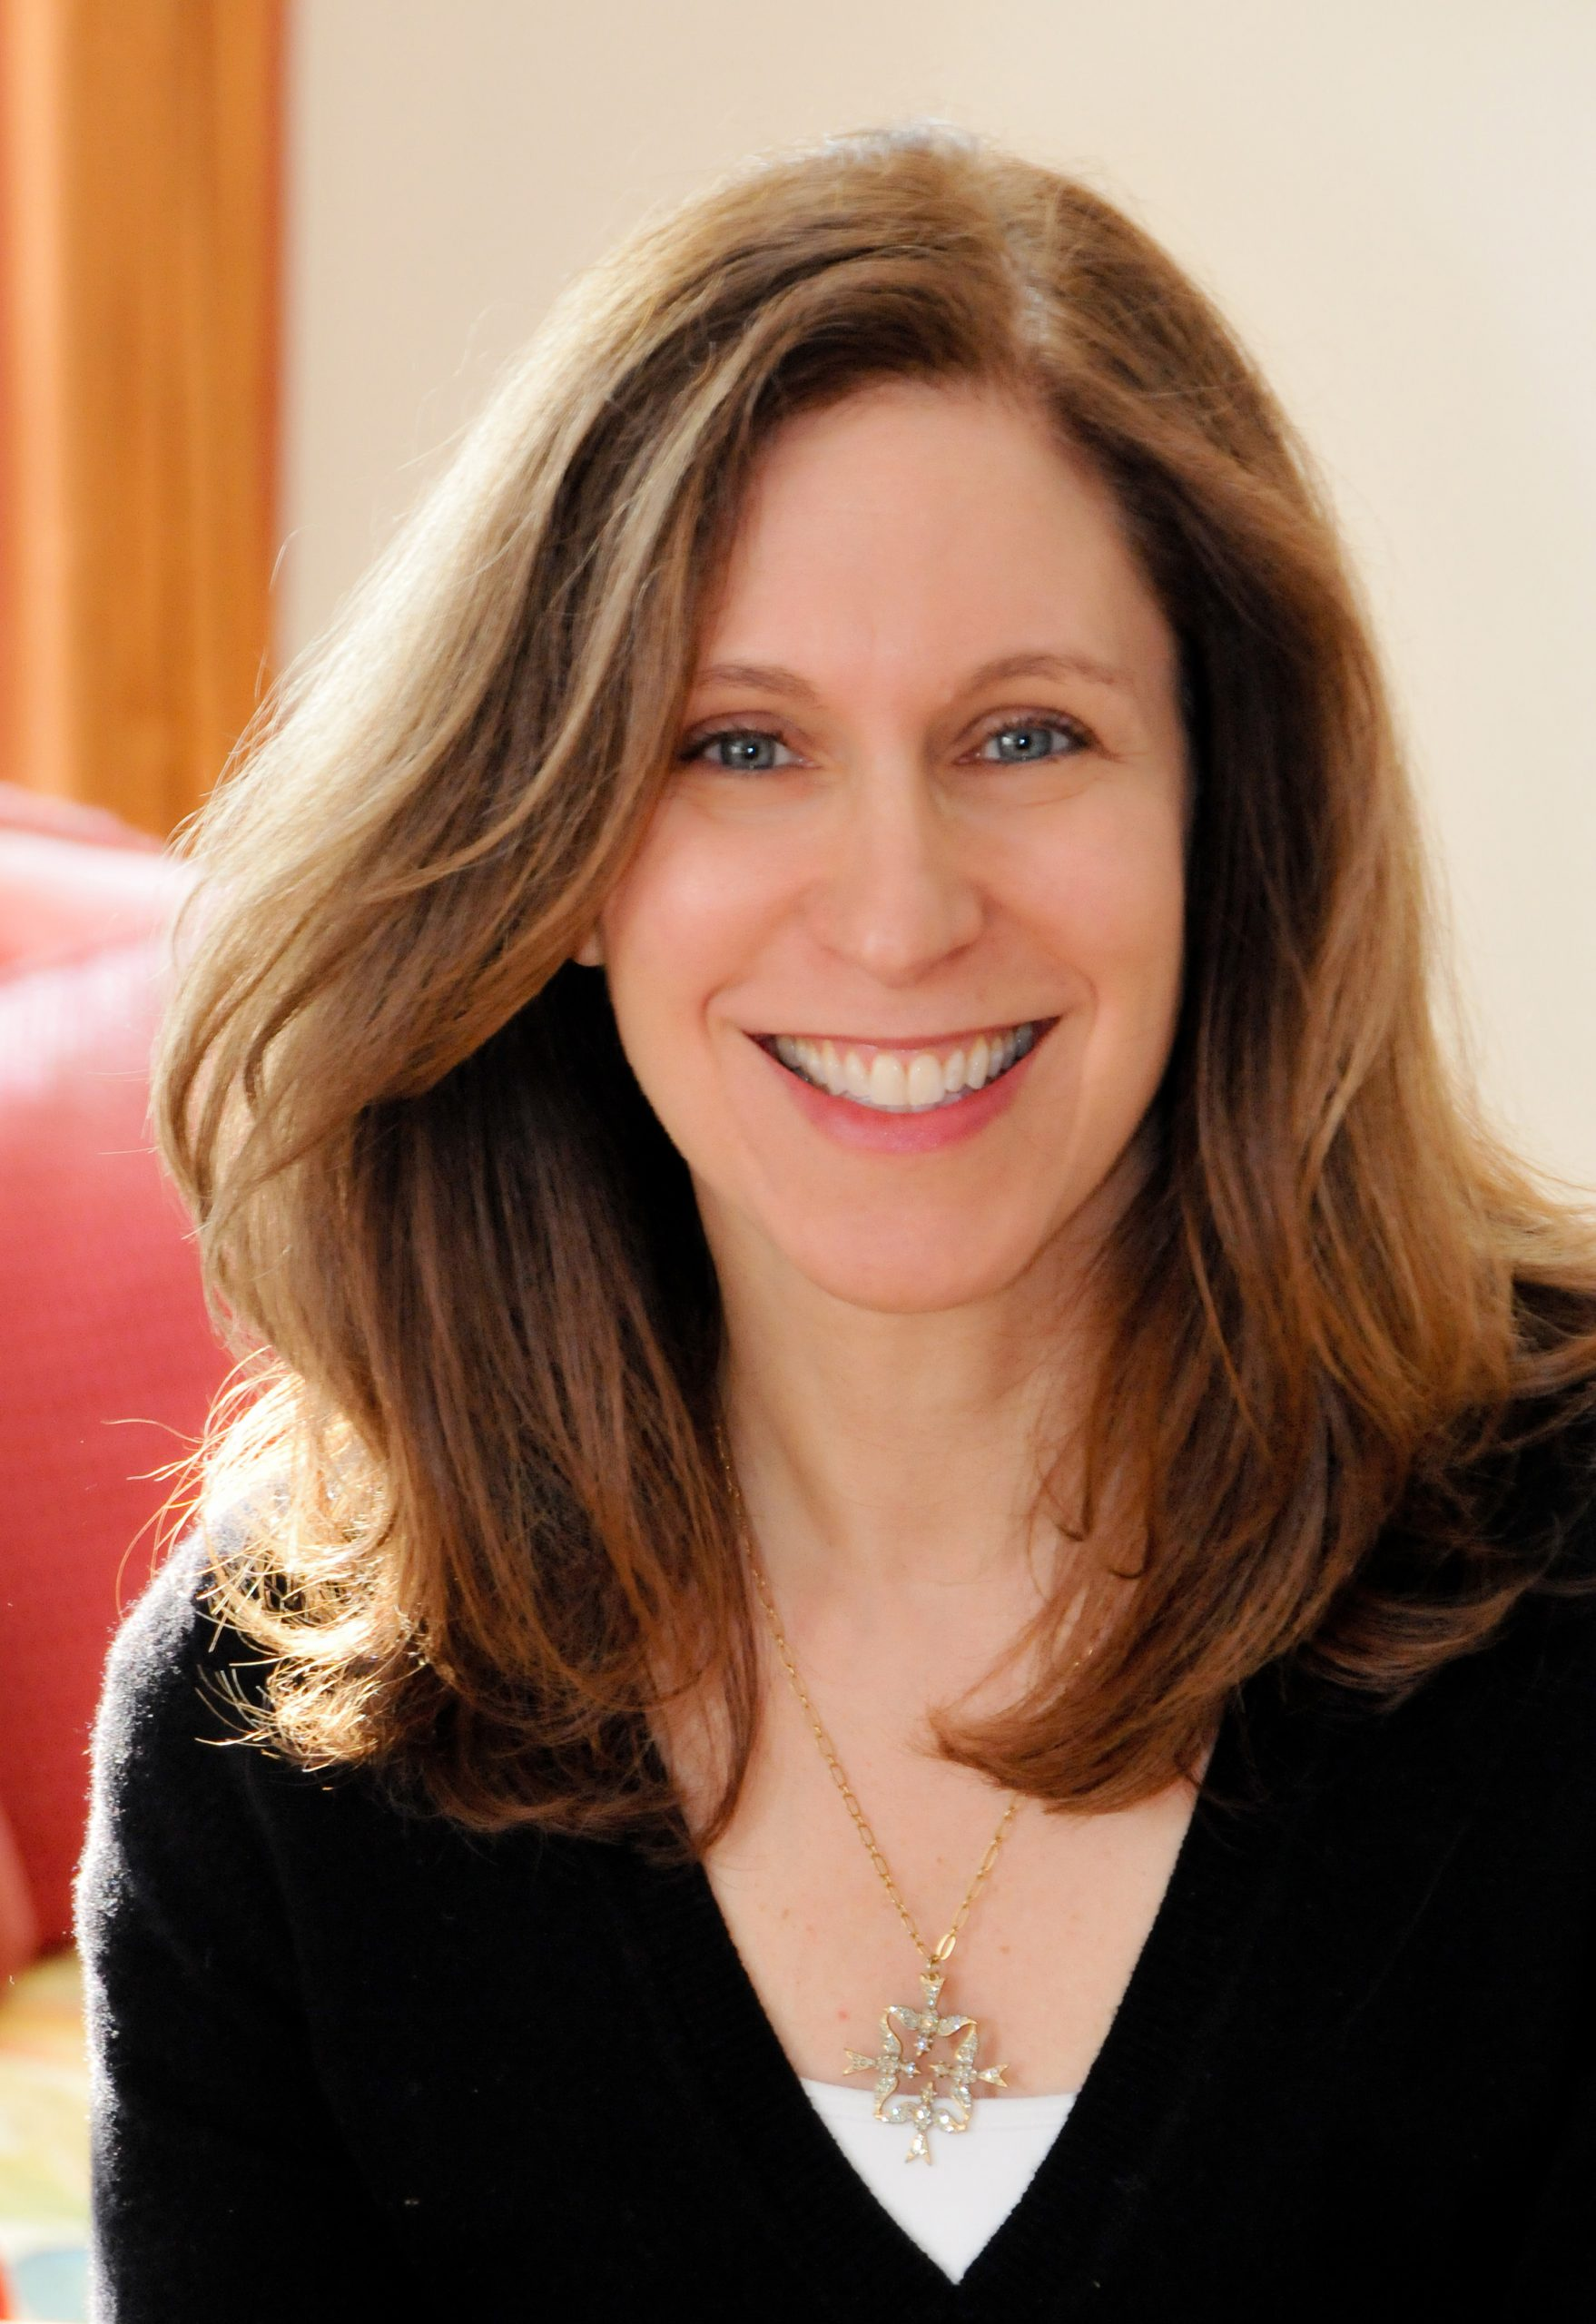 Interview with Lauren Tarshis, author of the super popular I SURVIVED series, now with a new 9/11 graphic novel